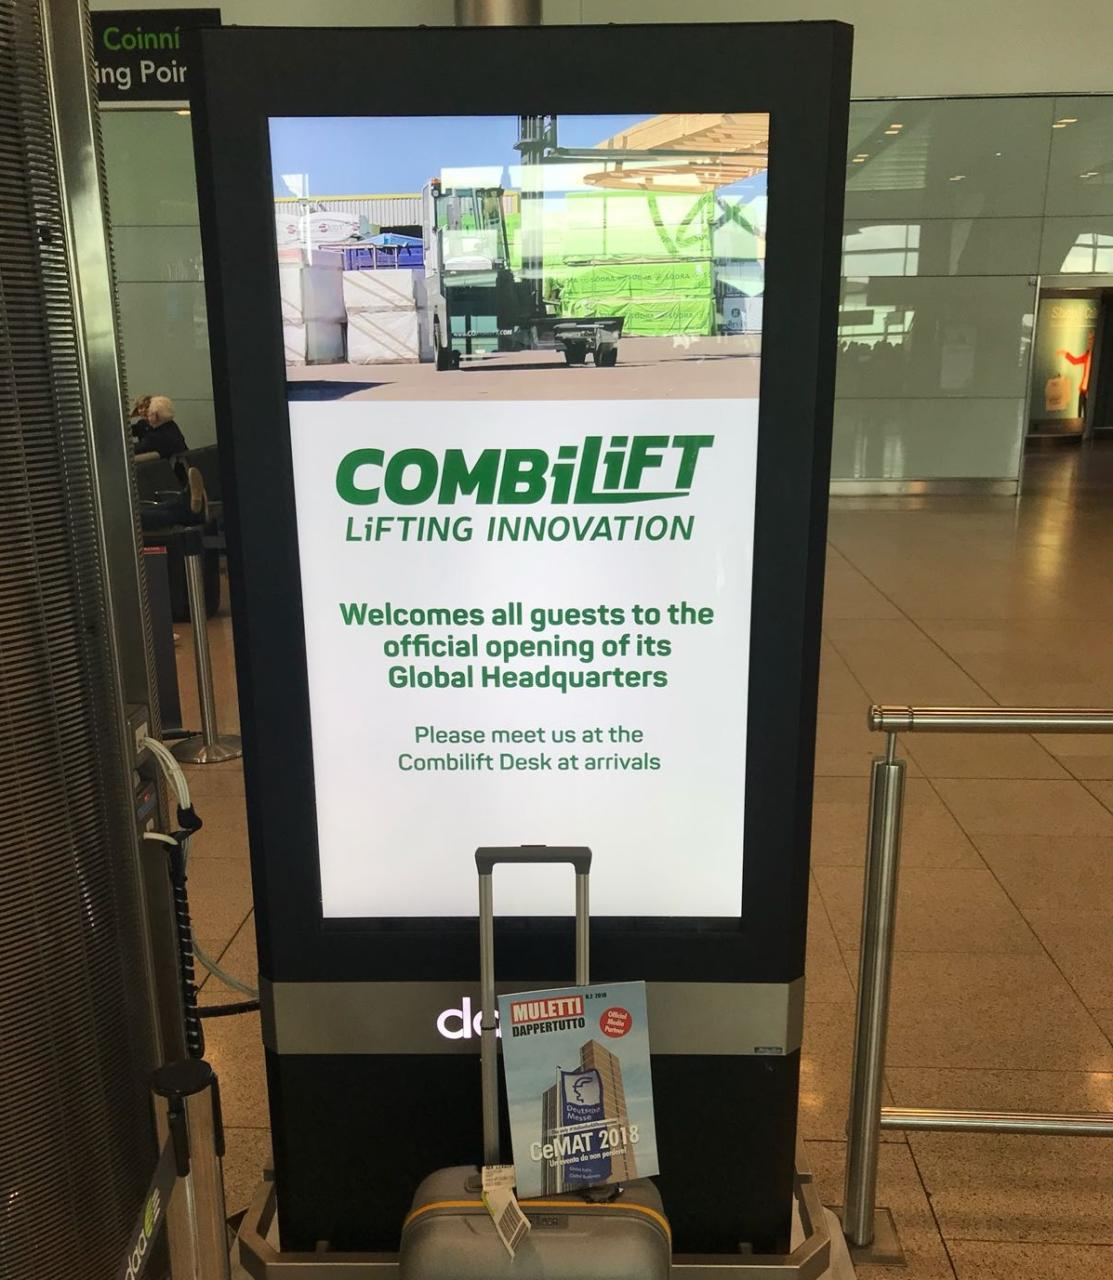 combilift-lifting-innovation